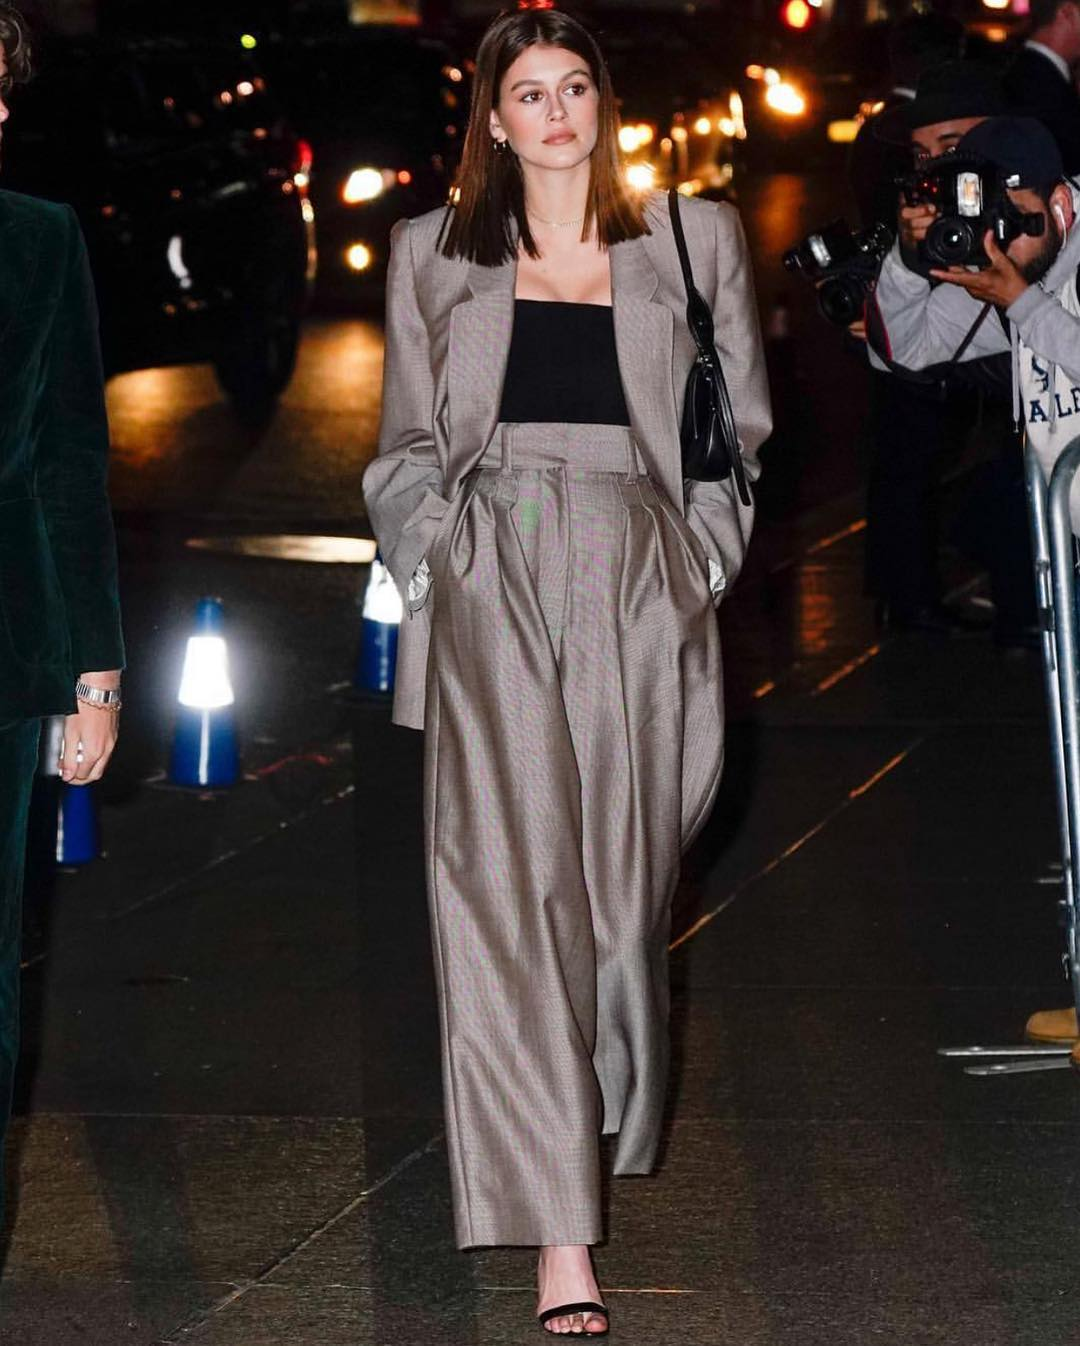 kaia-gerber-marc-jacobs-wedding-outfit-suit